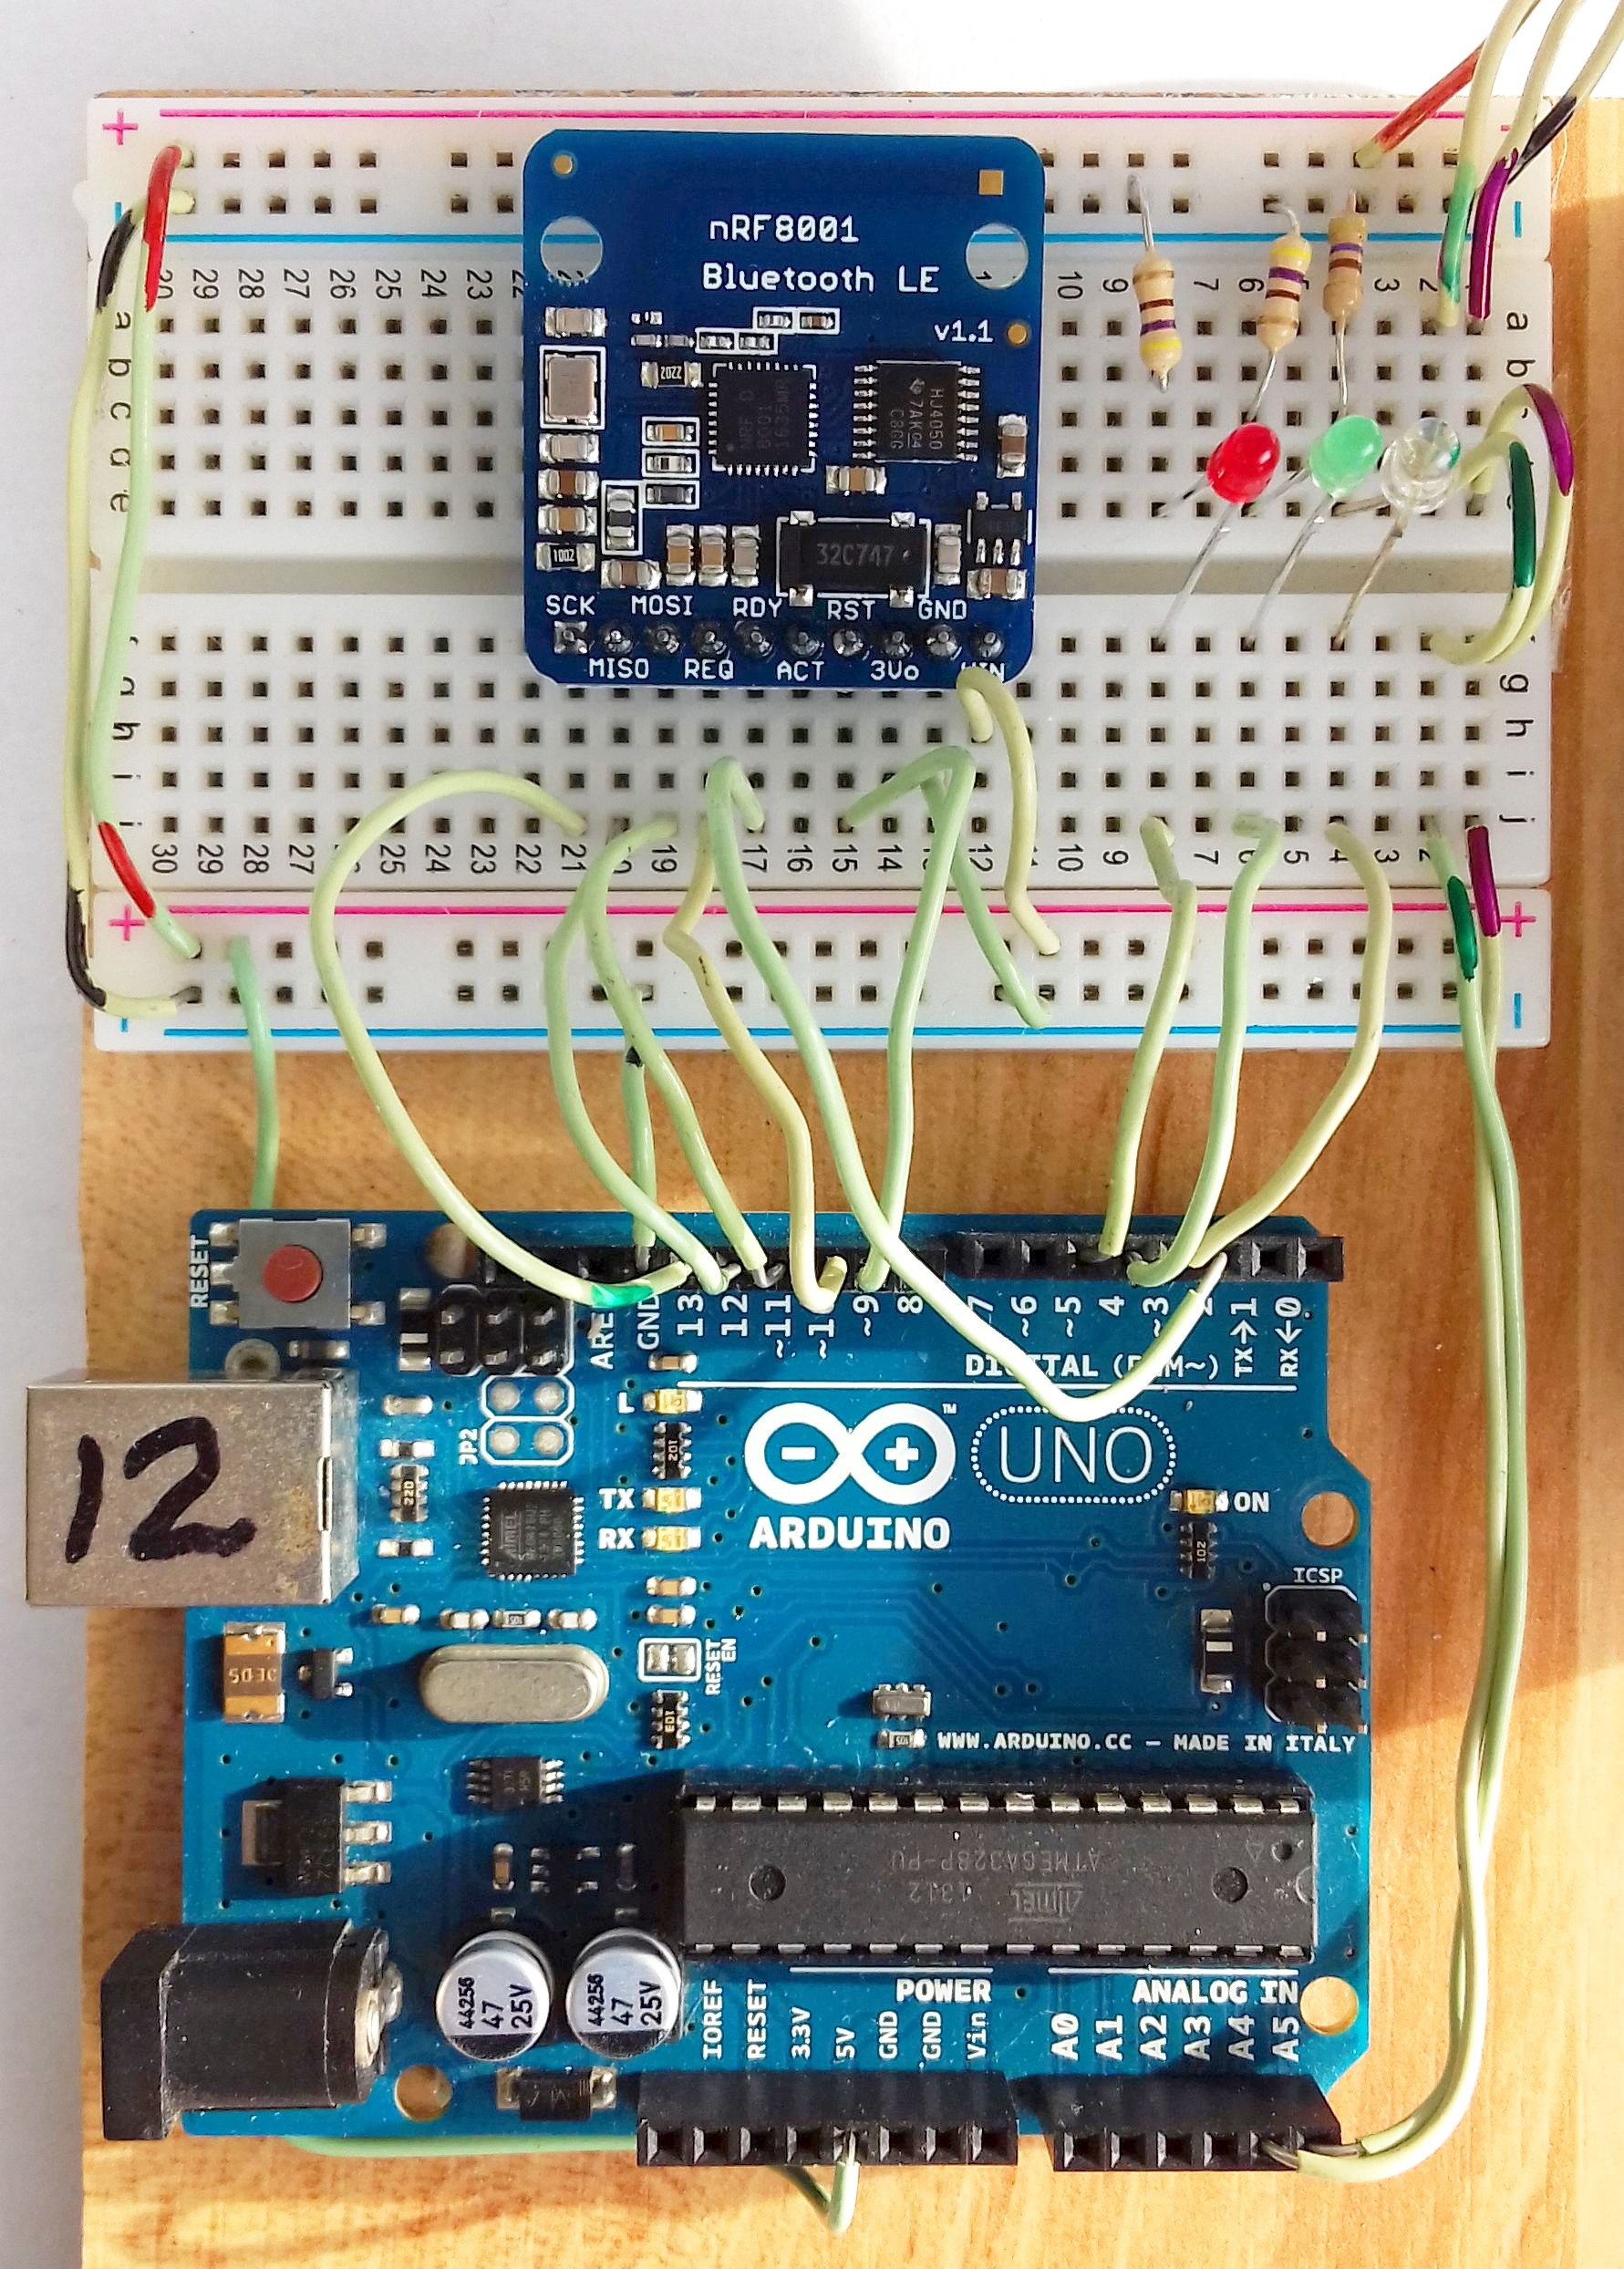 How to Use Bluetooth on the Arduino